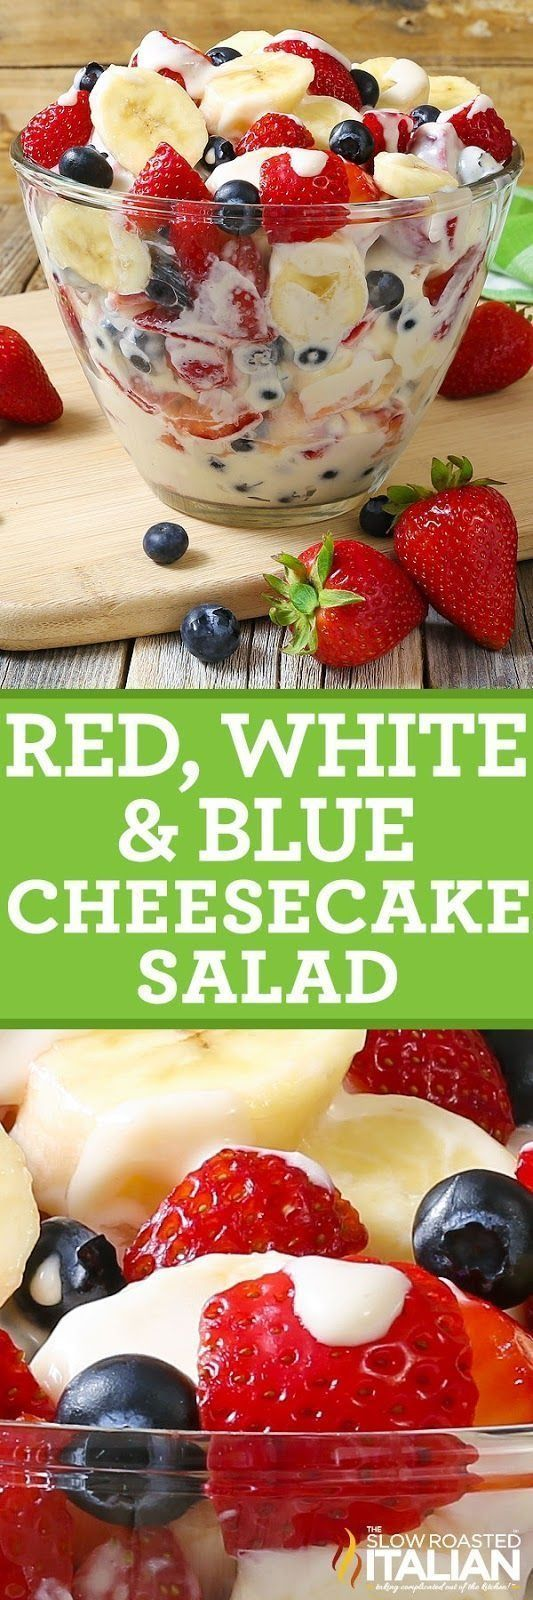 Easy Patriotic Red, White and Blue Cheesecake Salad is an outstanding food or side dish idea for your 4th of July or Memorial Day party.